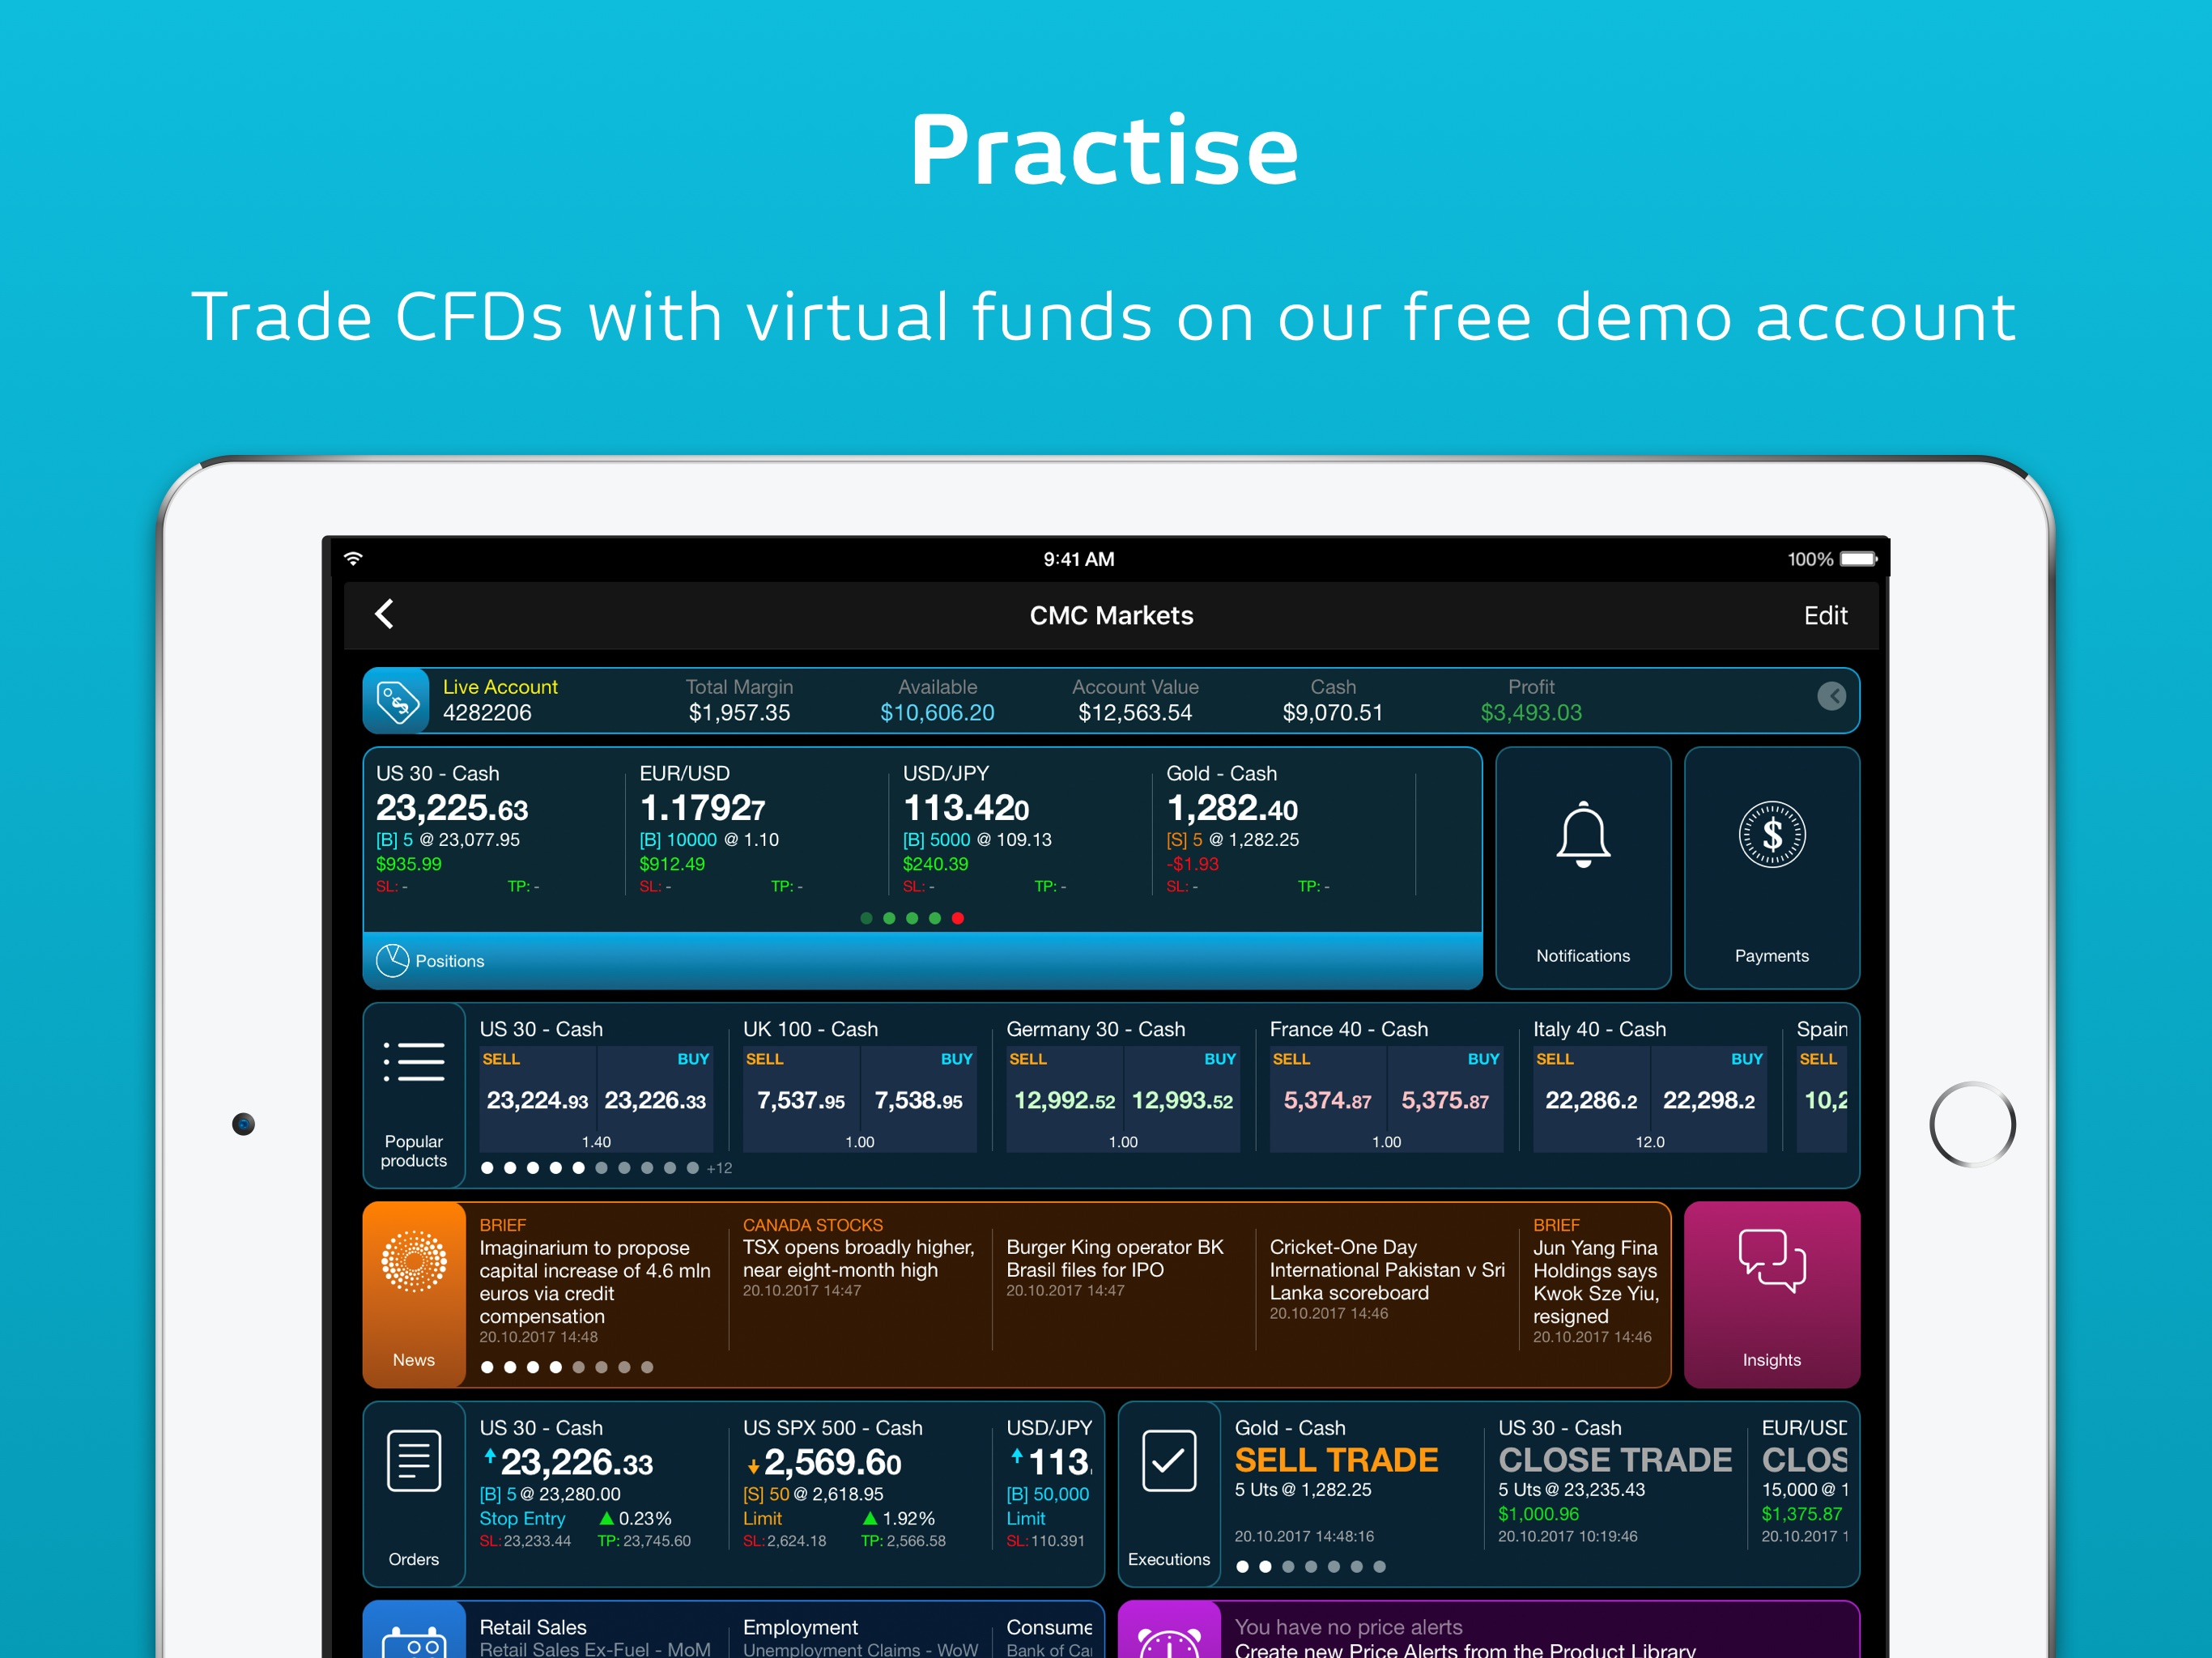 Share Trading Vs Cfd Cmc Cfd Trading For Ipad Aso Report And App Store Data